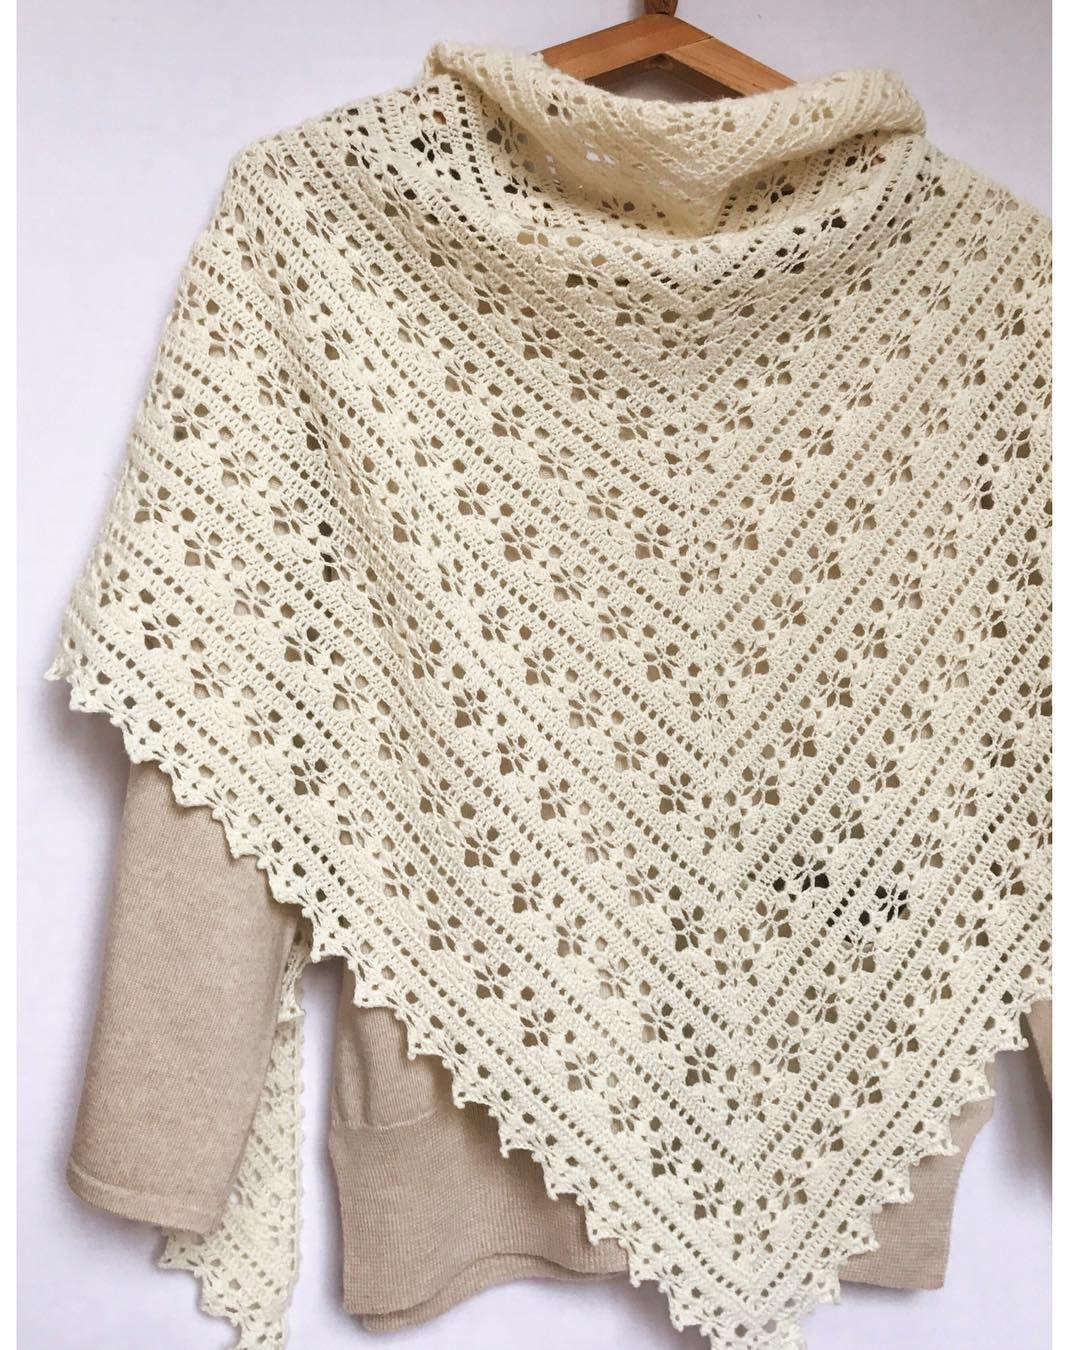 Easy and Cute FREE Crochet Shawl for beginner Ladies | ponchos ...